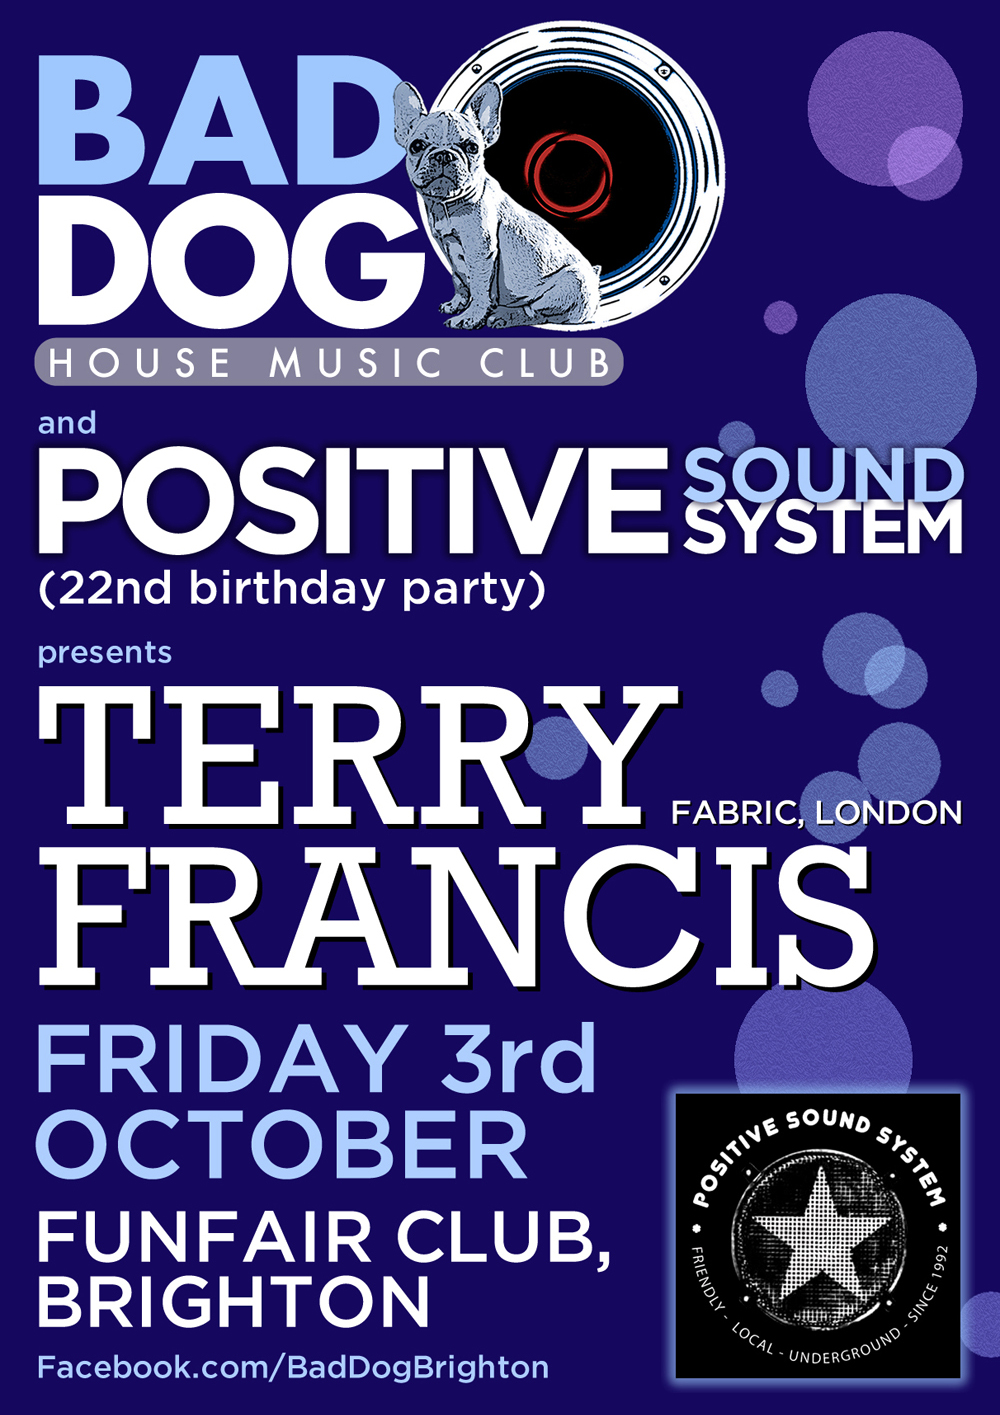 Bad Dog & Positive Sound System flyer - designed by Hook Web & Print